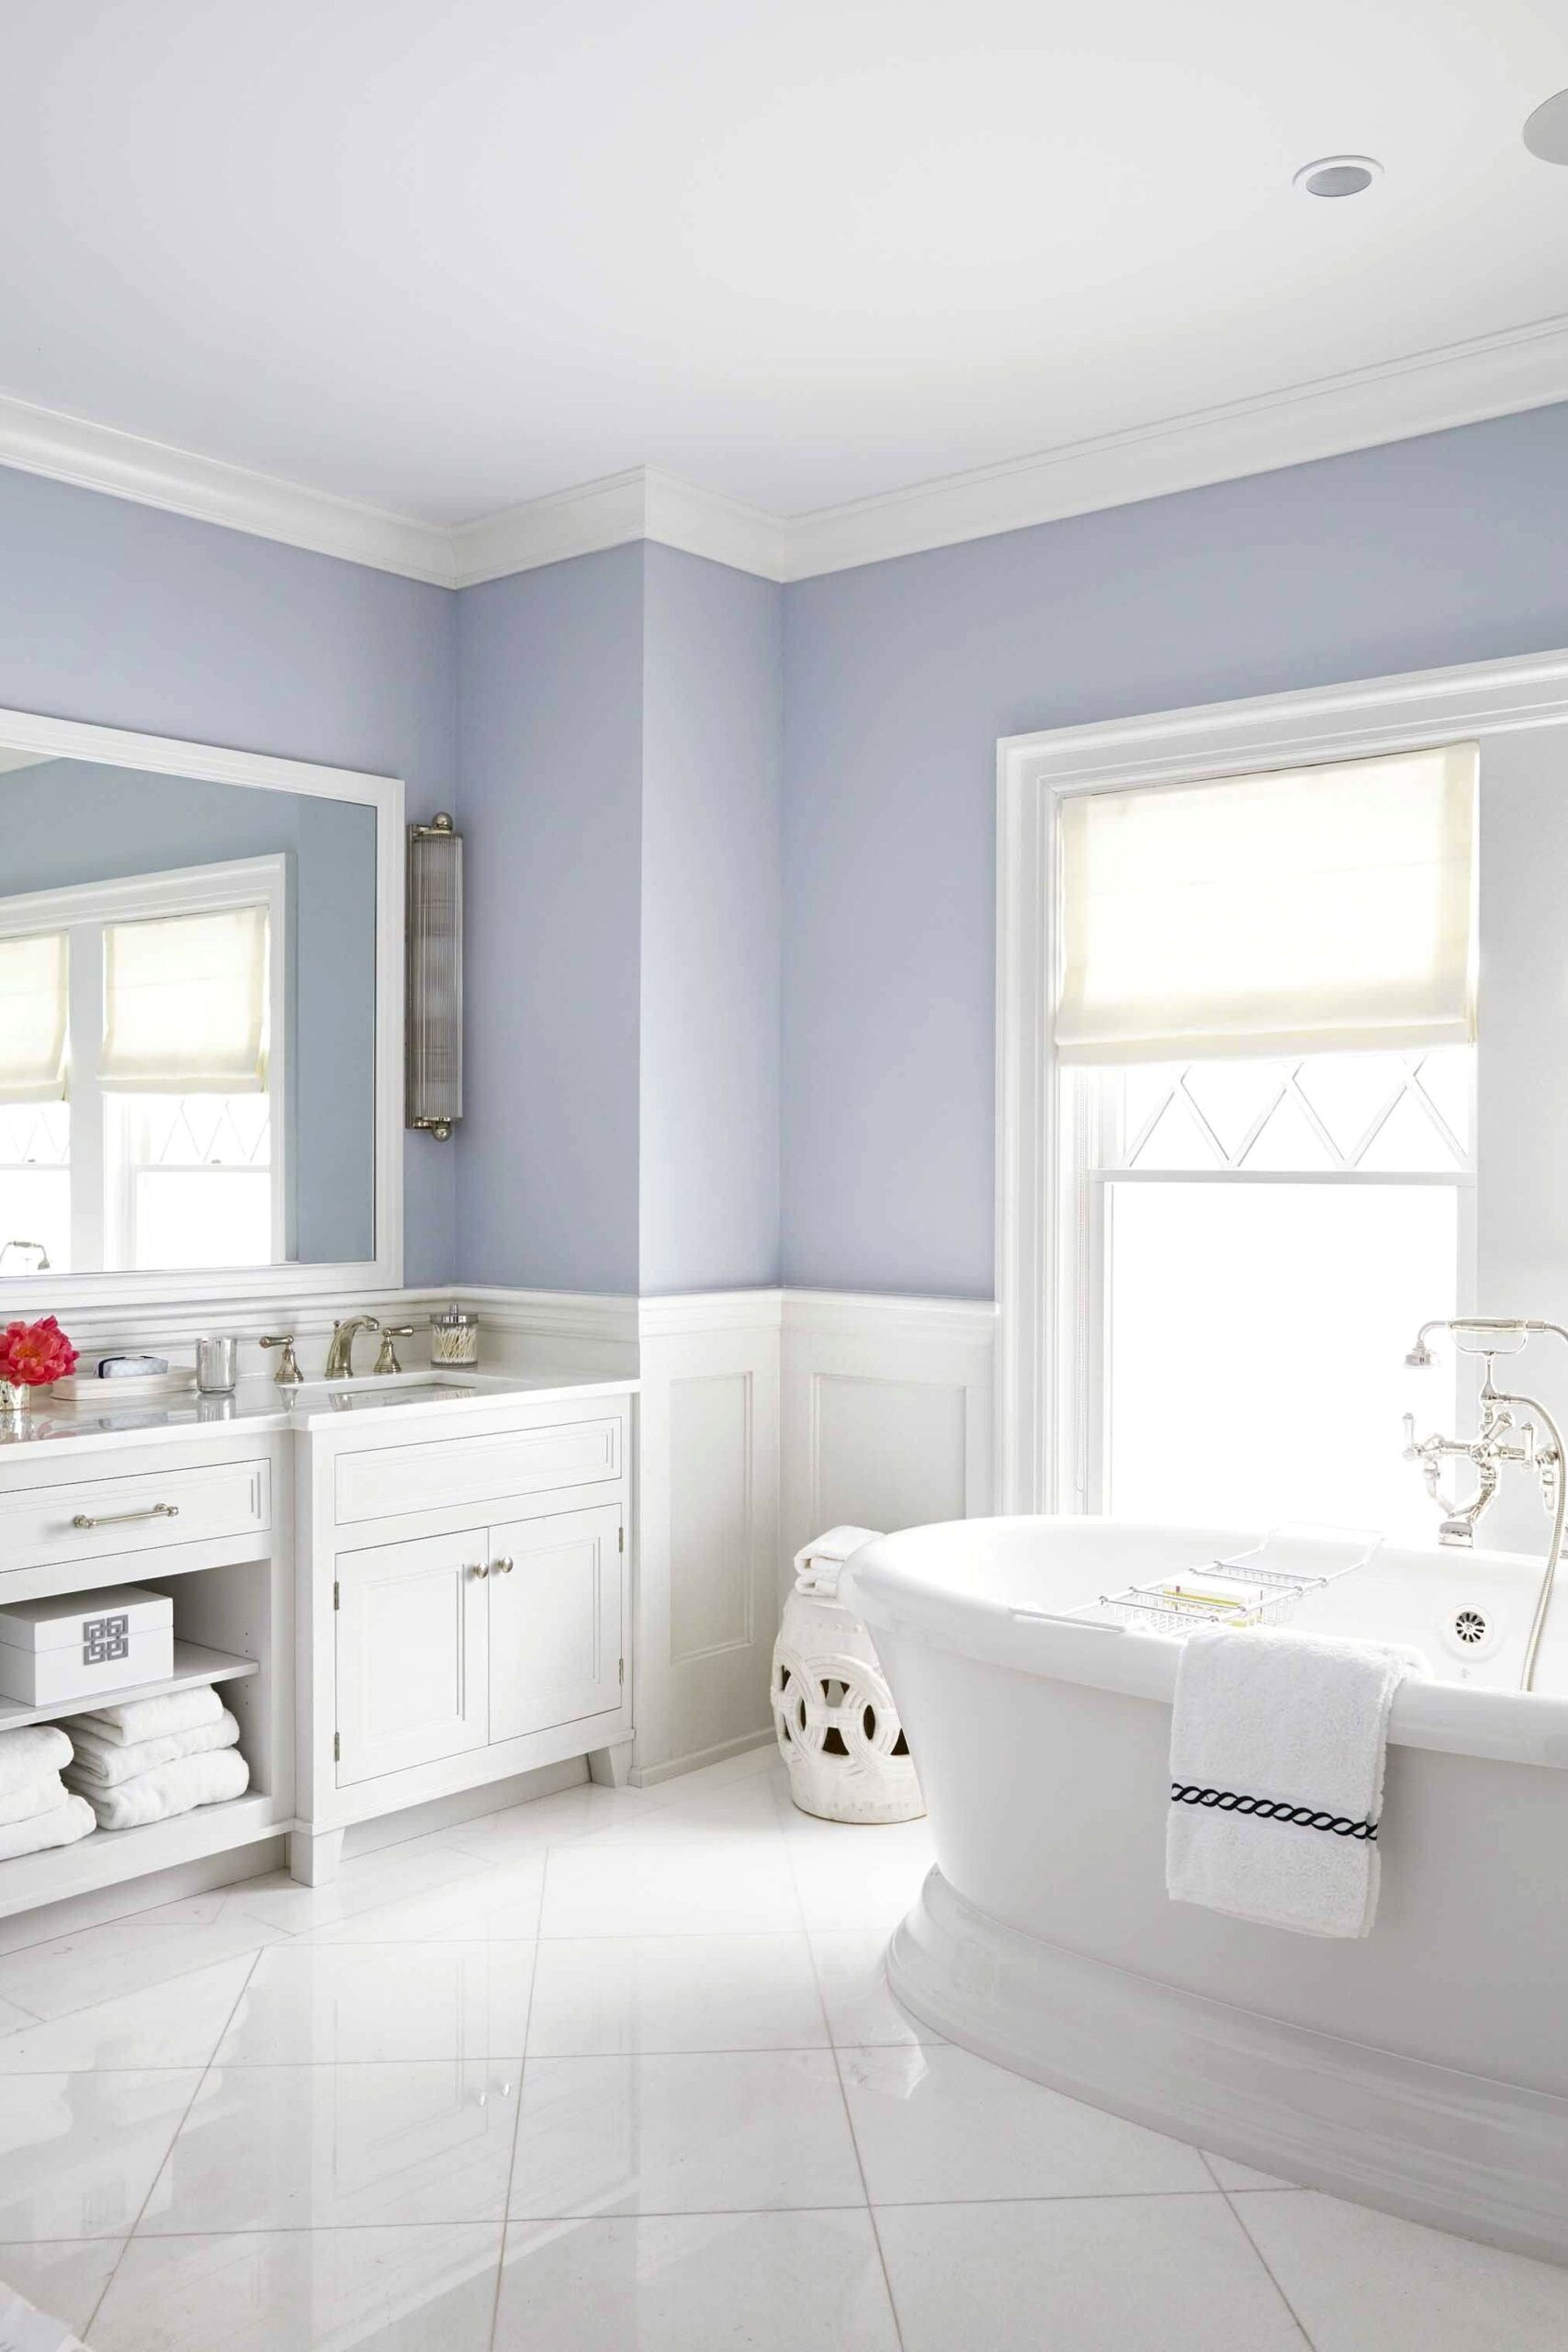 Top 10 Outdated Bathroom Design Trends To Avoid In 2021 In 2020 Small Bathroom Paint Colors Best Bathroom Paint Colors Bathroom Paint Colors